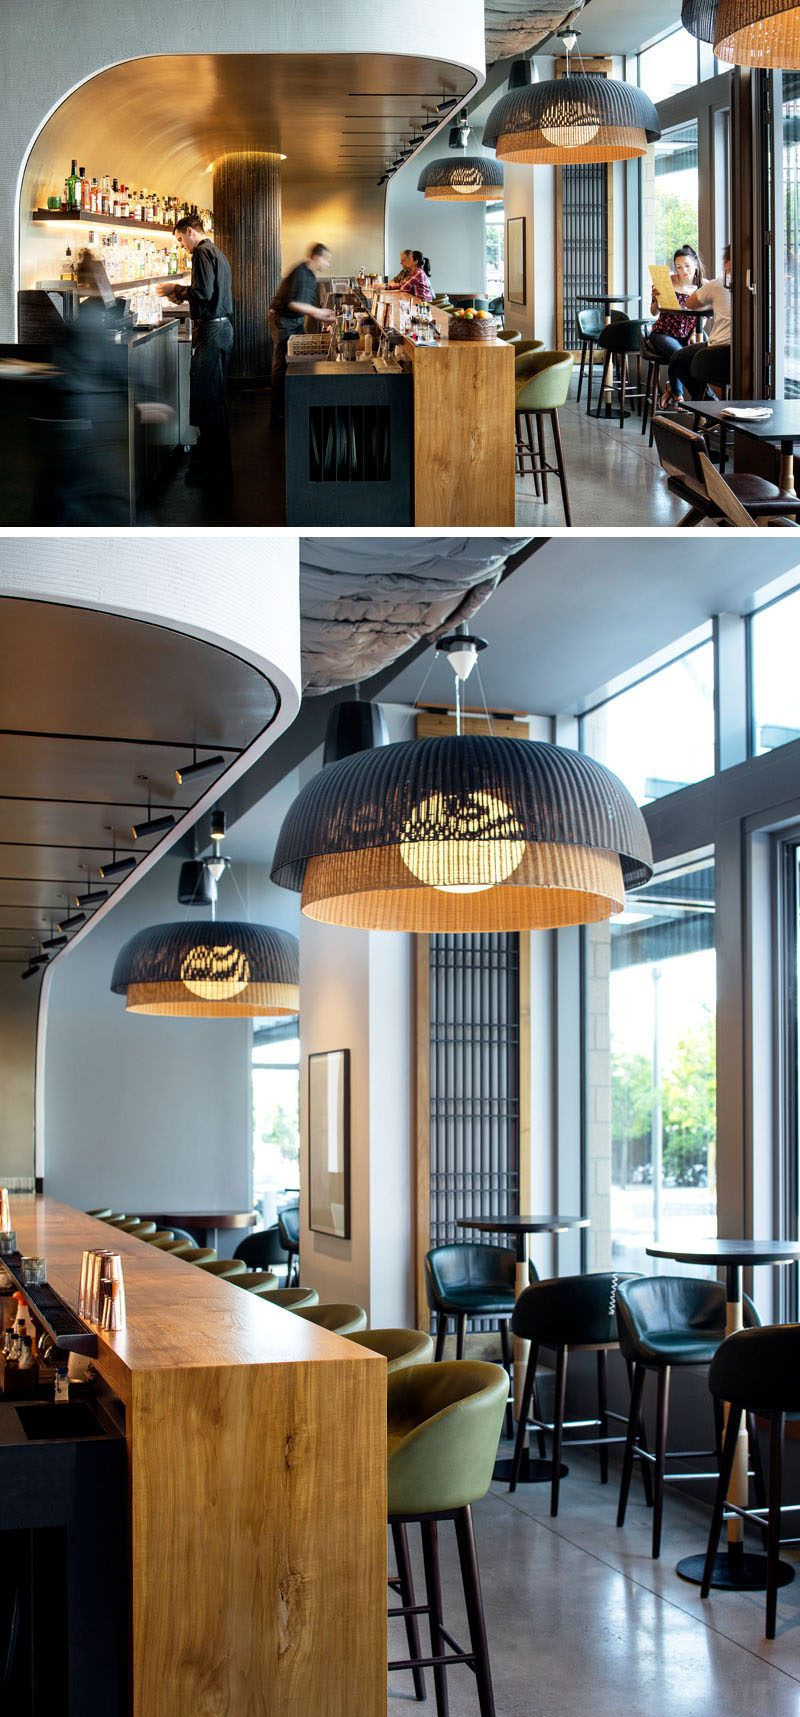 Skb Architects Have Designed The Interior Of A New Southeast Asian Restaurant Near Seattle Washington Restaurant Design Restaurant Interior Design Modern Restaurant